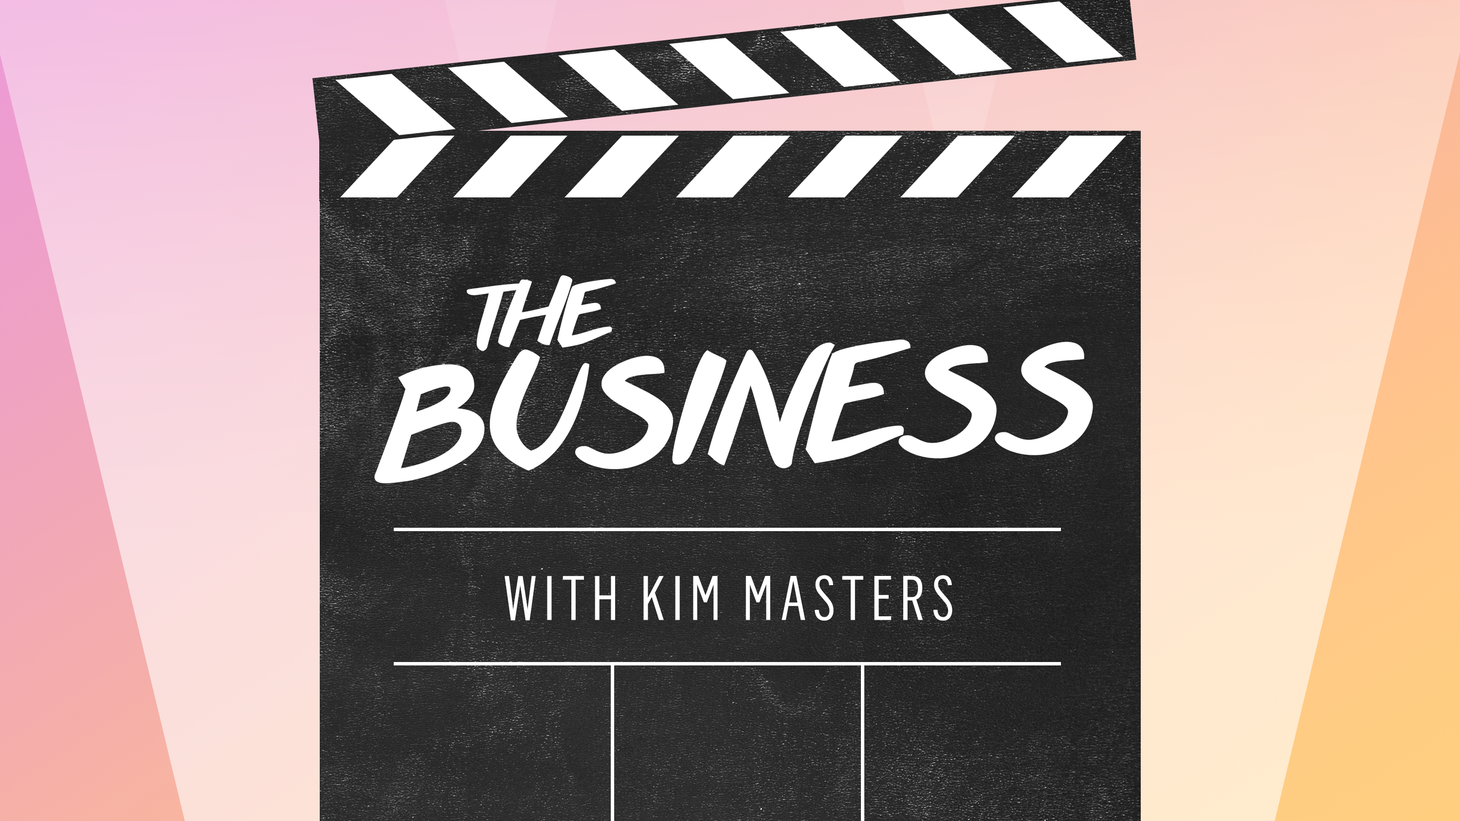 Barry Michels and Phil Stutz are two of the busiest shrinks in Hollywood. We talk about their unconventional techniques and hear from a couple of their former clients.